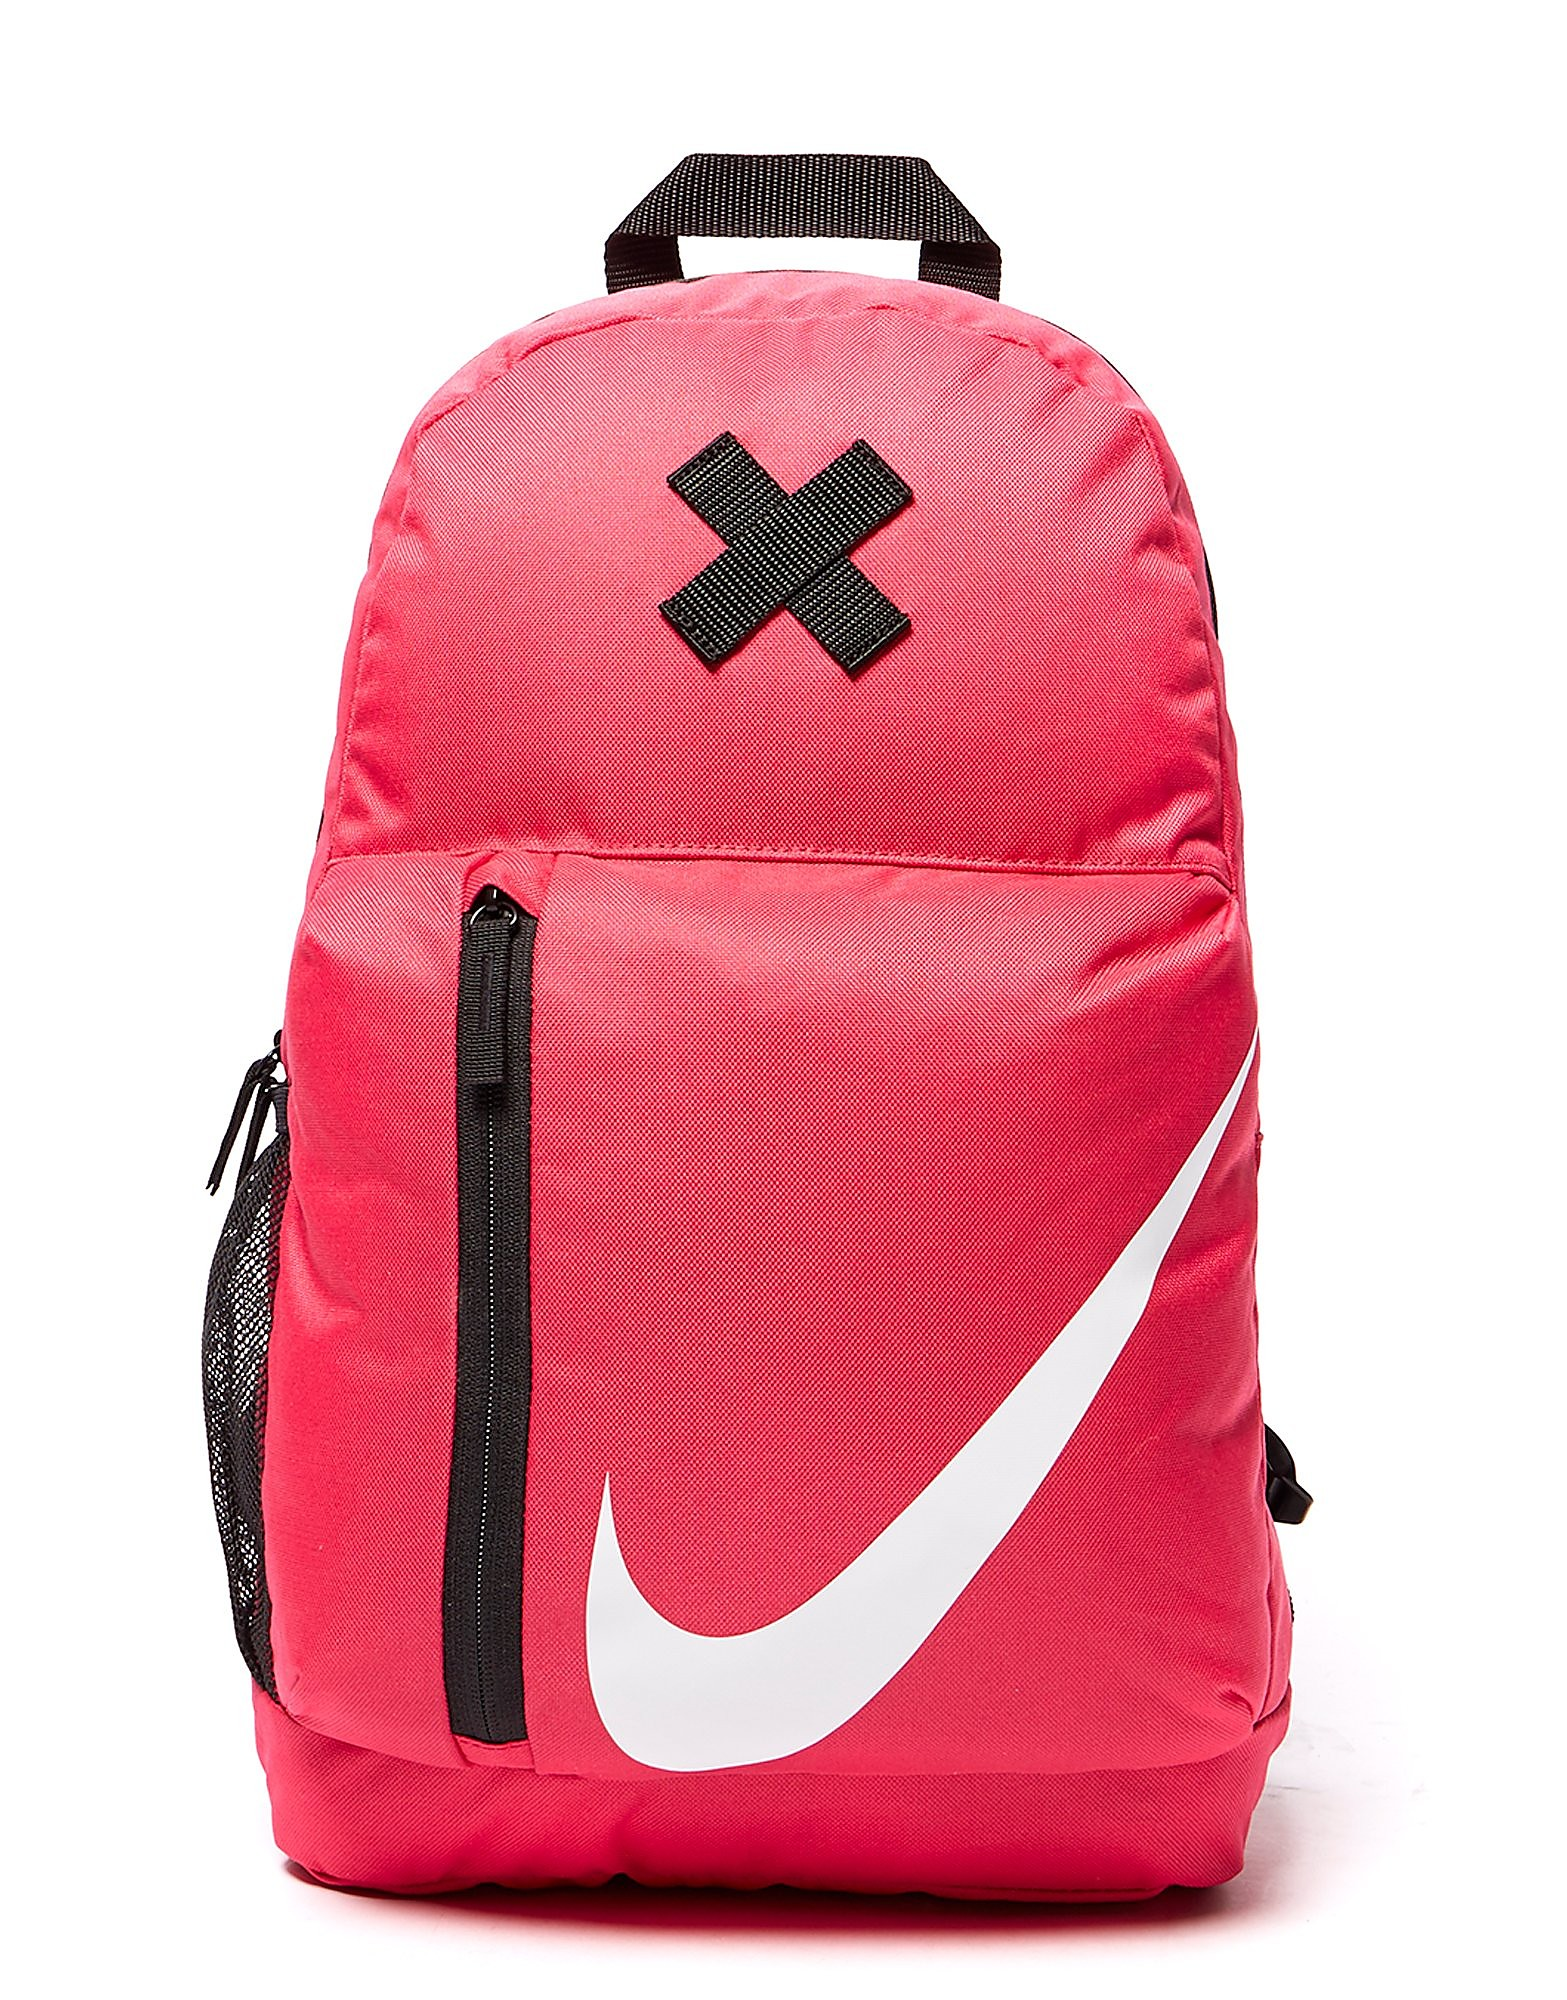 Nike Elemental Backpack